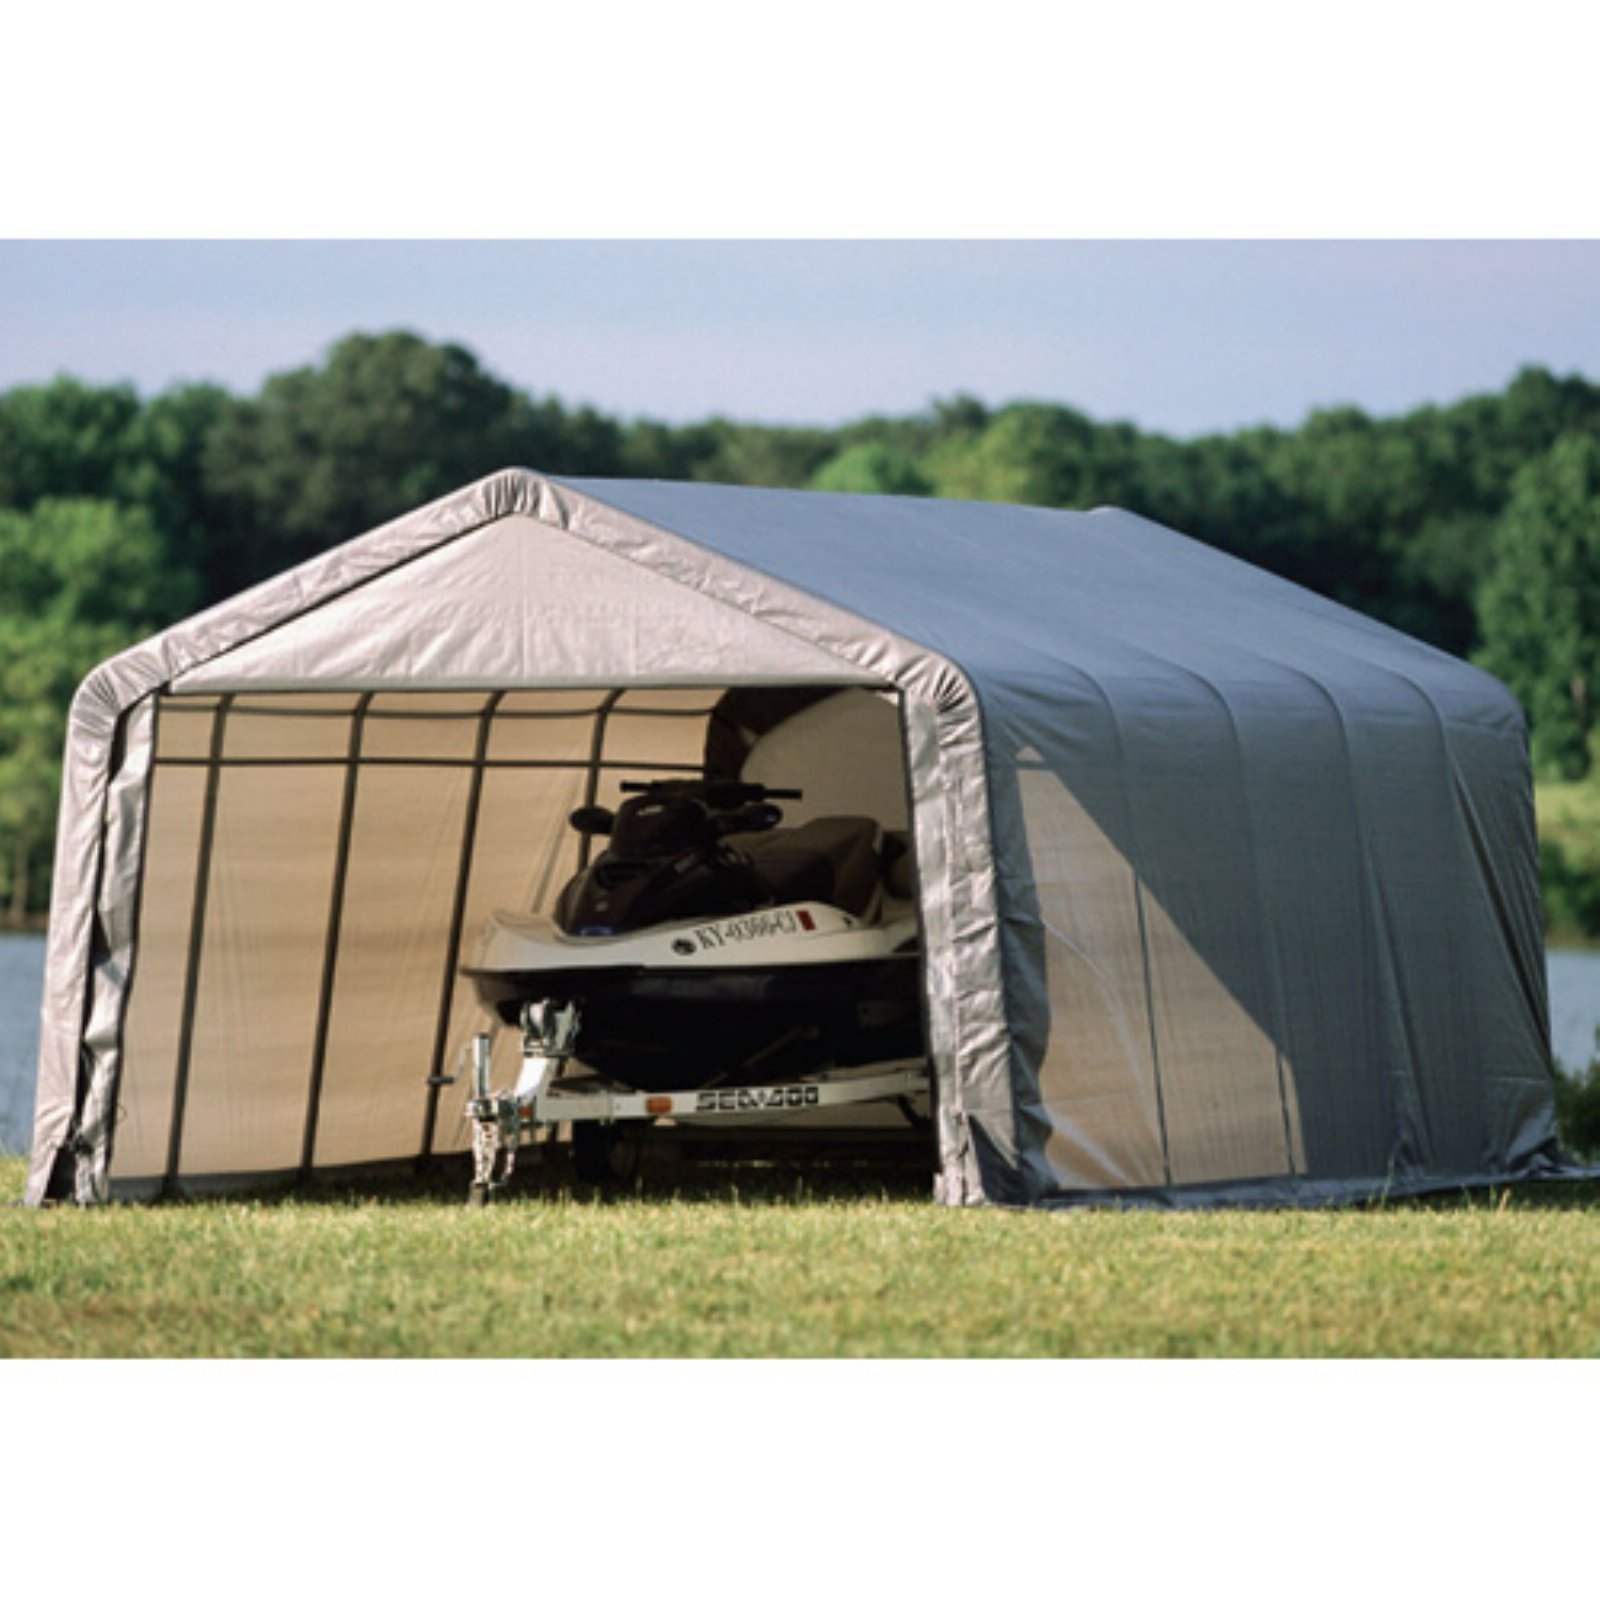 Shelterlogic 12' x 20' x 8' Peak Style Shelter, Green